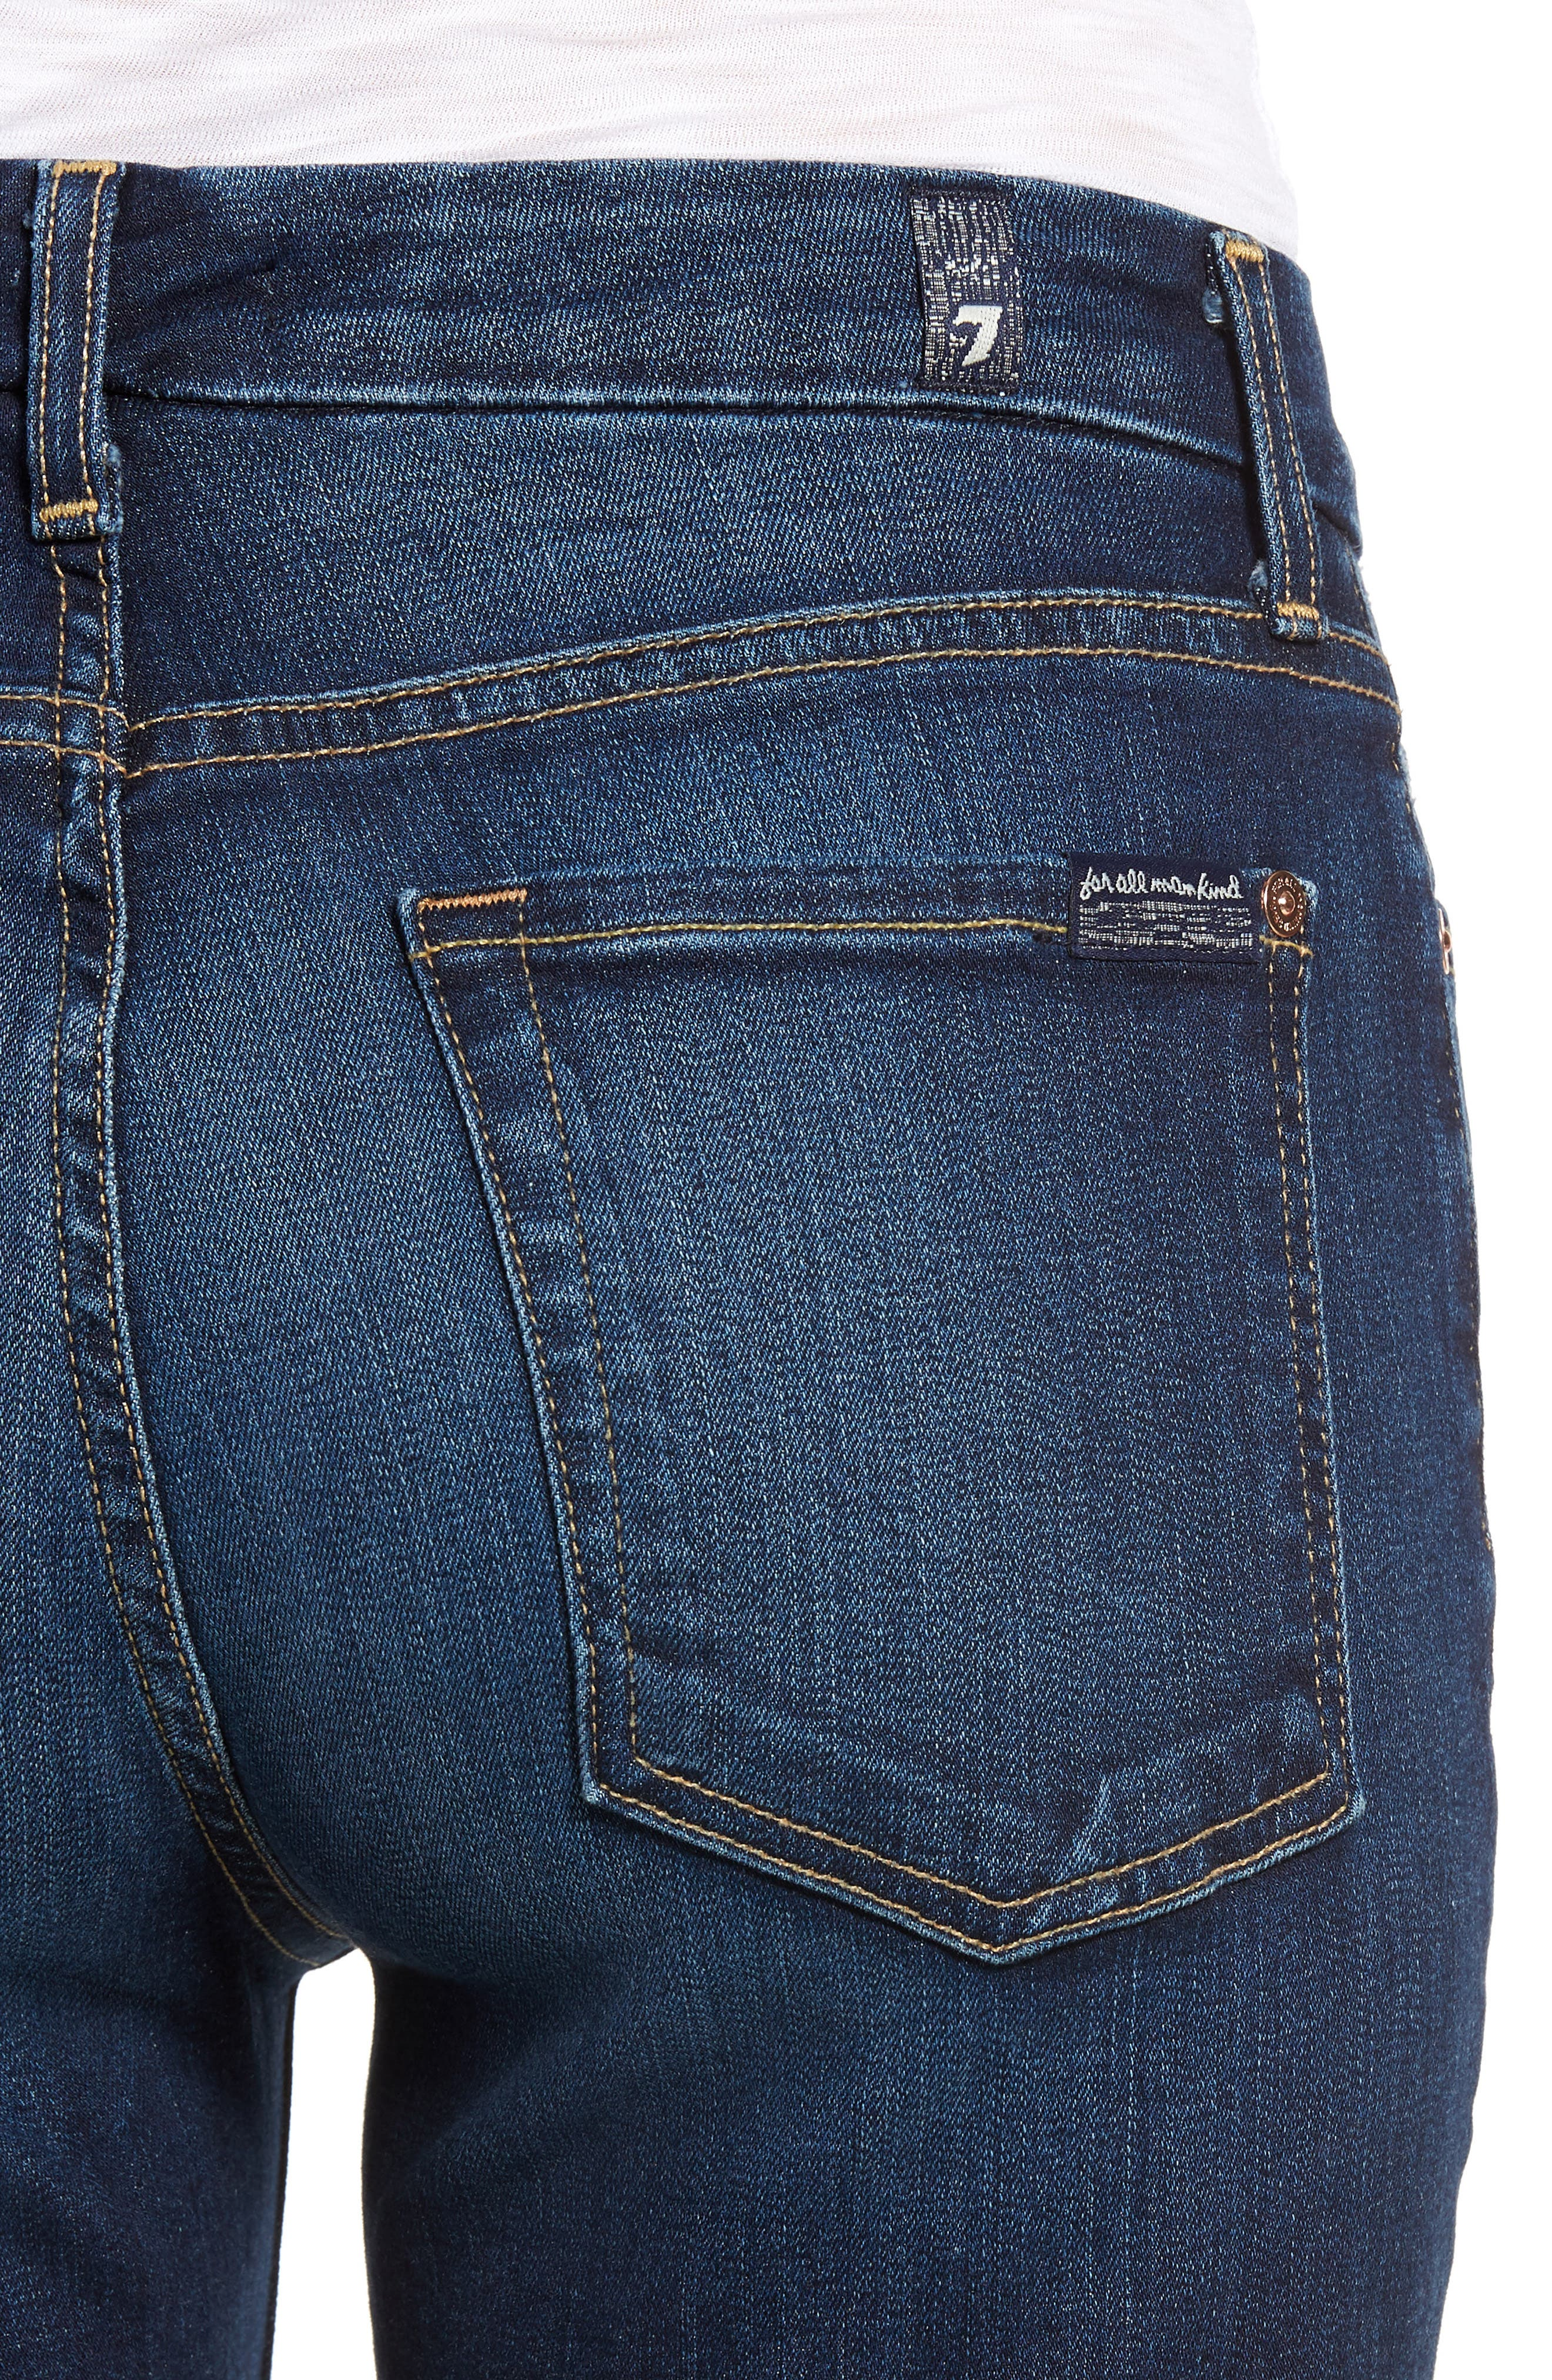 7 FOR ALL MANKIND<SUP>®</SUP>, b(air) Kimmie Straight Leg Jeans, Alternate thumbnail 5, color, AUTHENTIC FATE